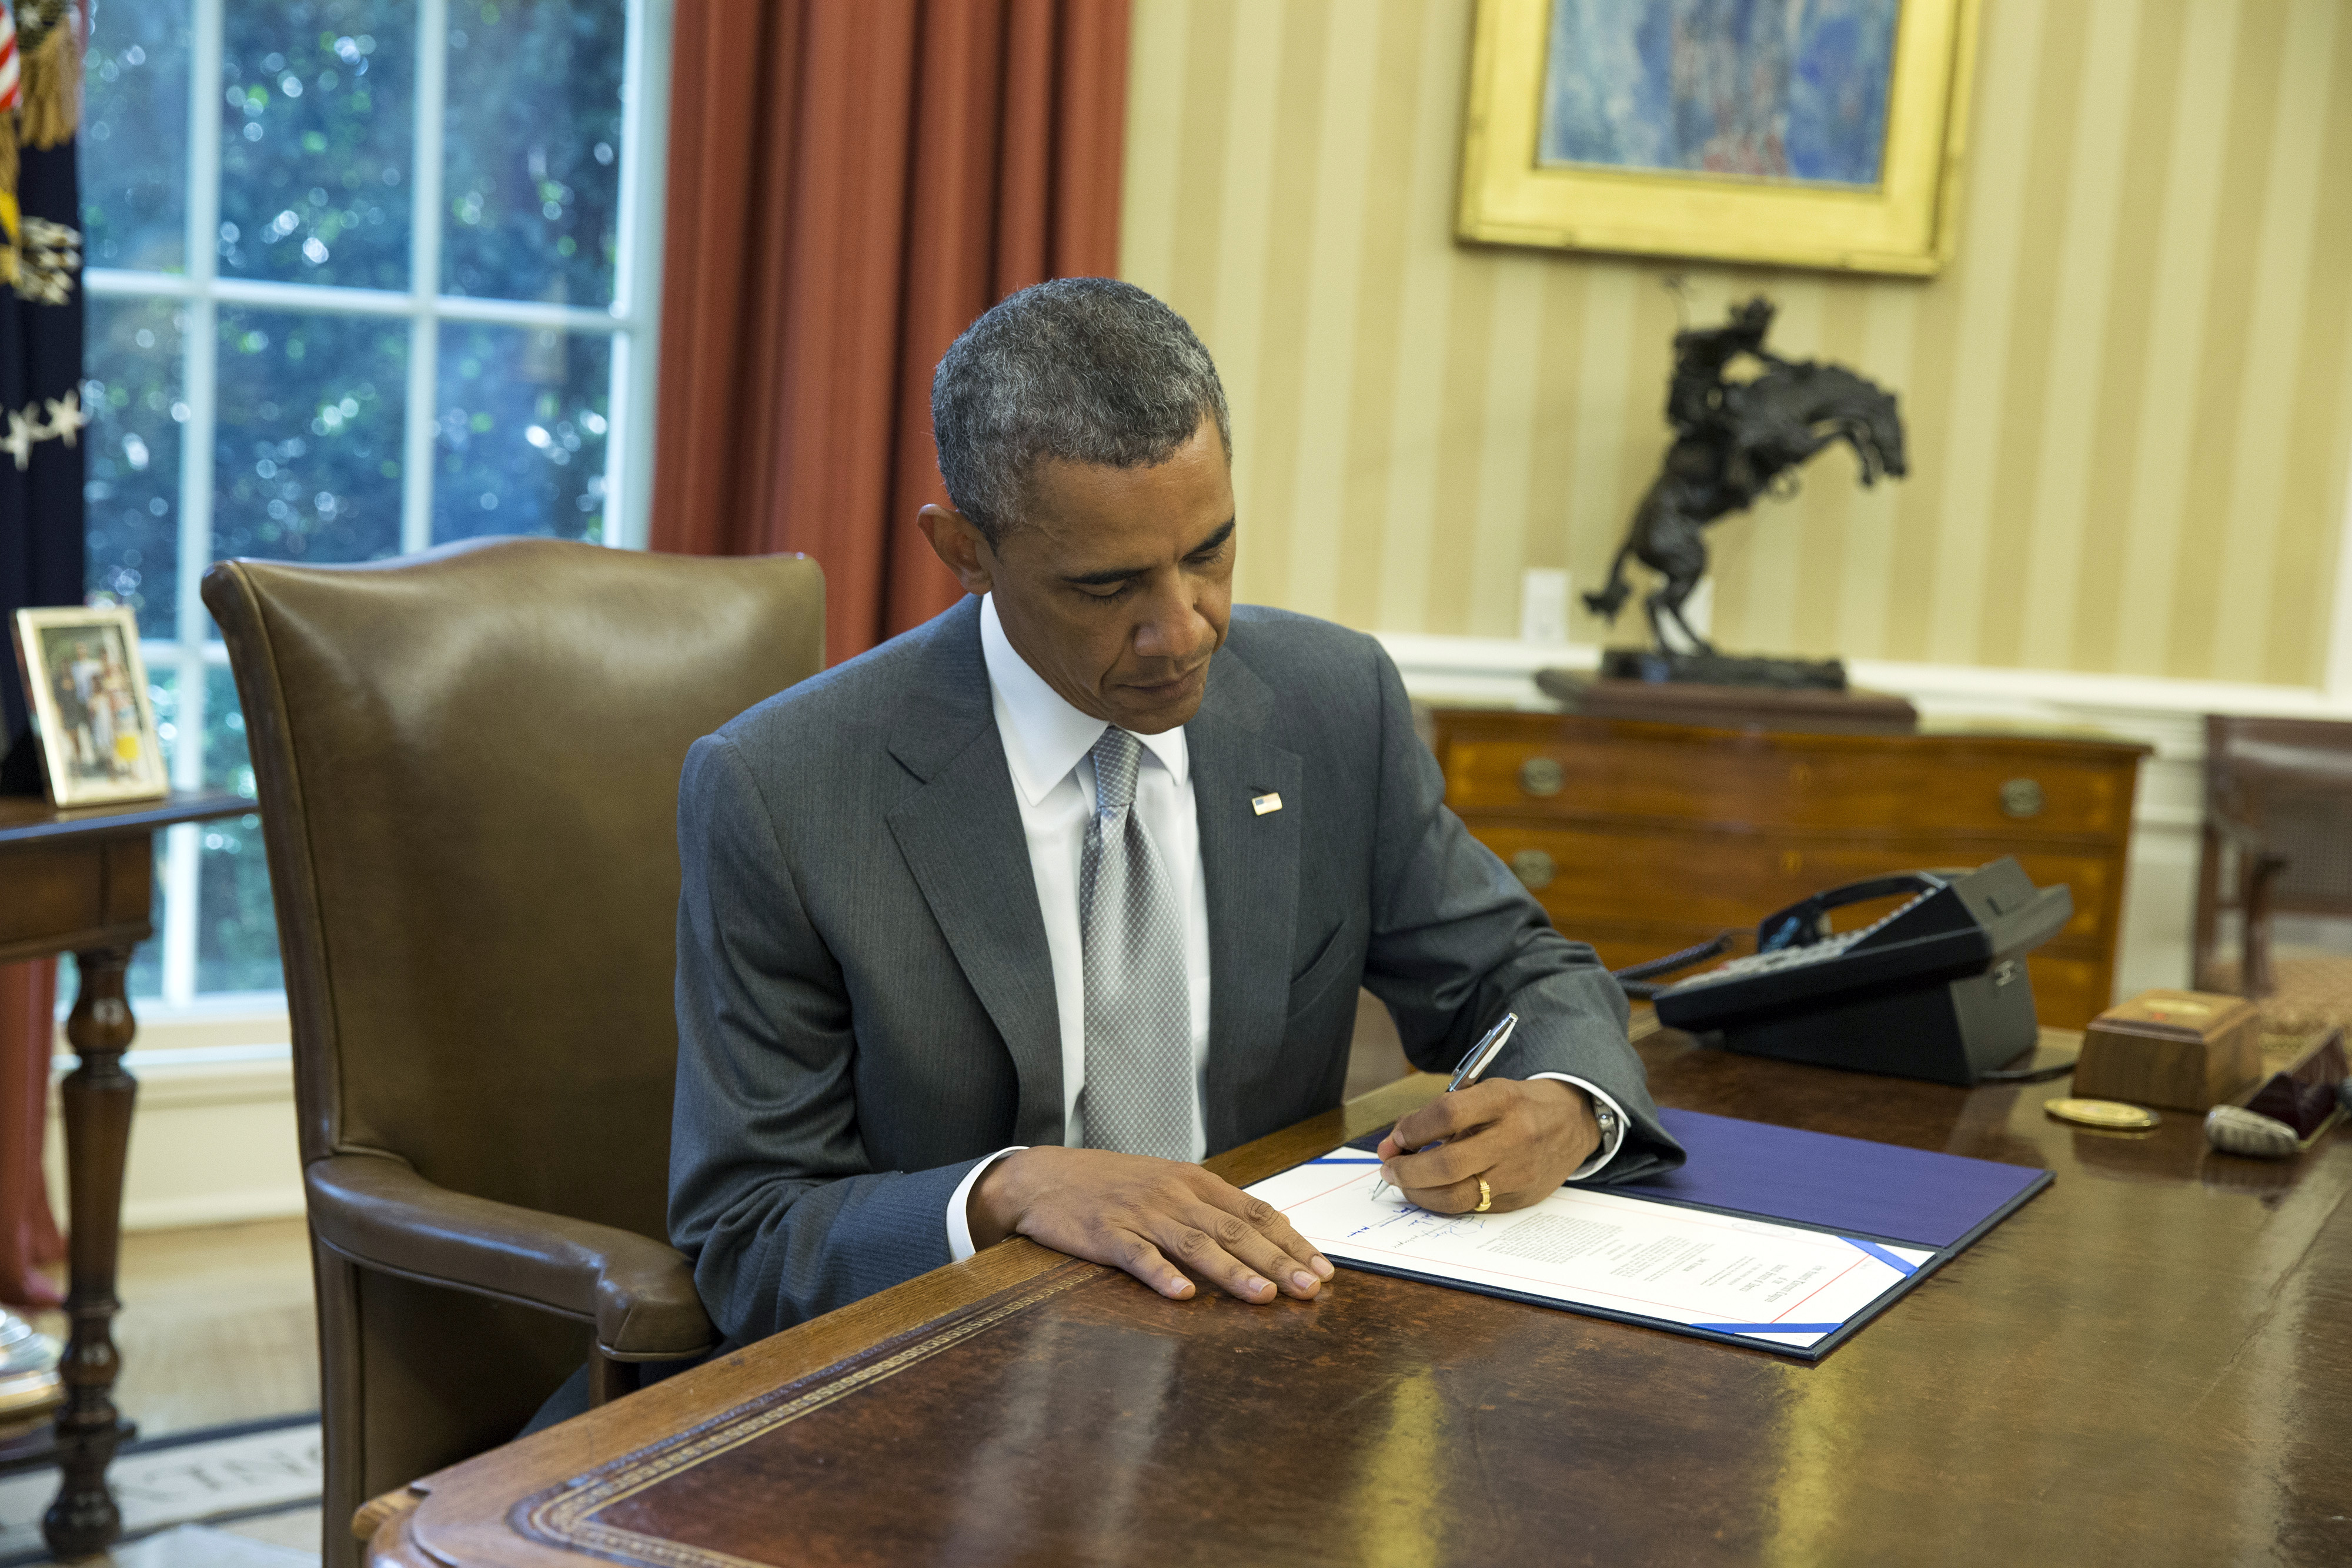 President Barack Obama signs  H.J. Res. 76,  a bill that provides an additional $225 million in U.S. taxpayer dollars for Israel's Iron Dome missile defense system, in the Oval Office of the White House, Monday, Aug. 4, 2014, in Washington.